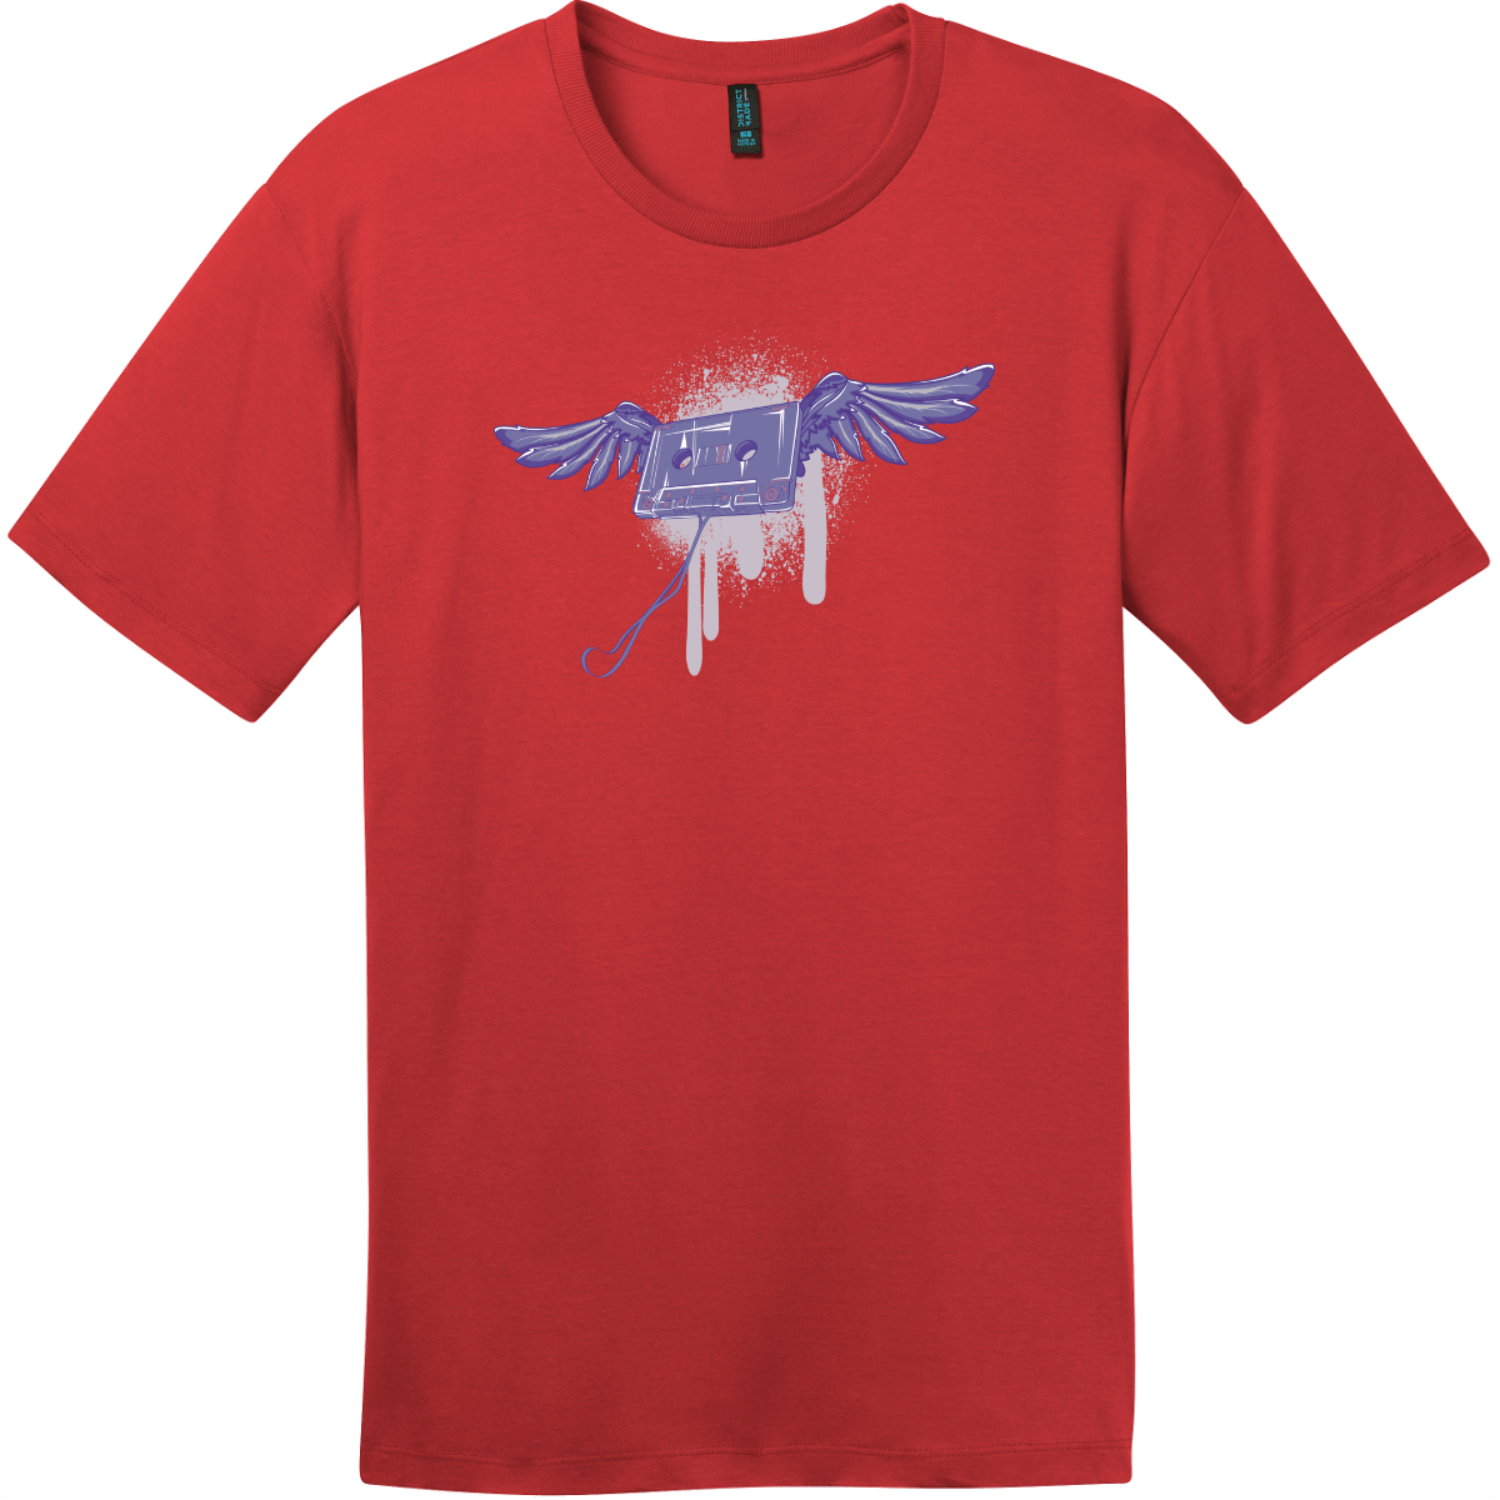 Cassette Tape With Wings Grunge T-Shirt Classic Red District Perfect Weight Tee DT104